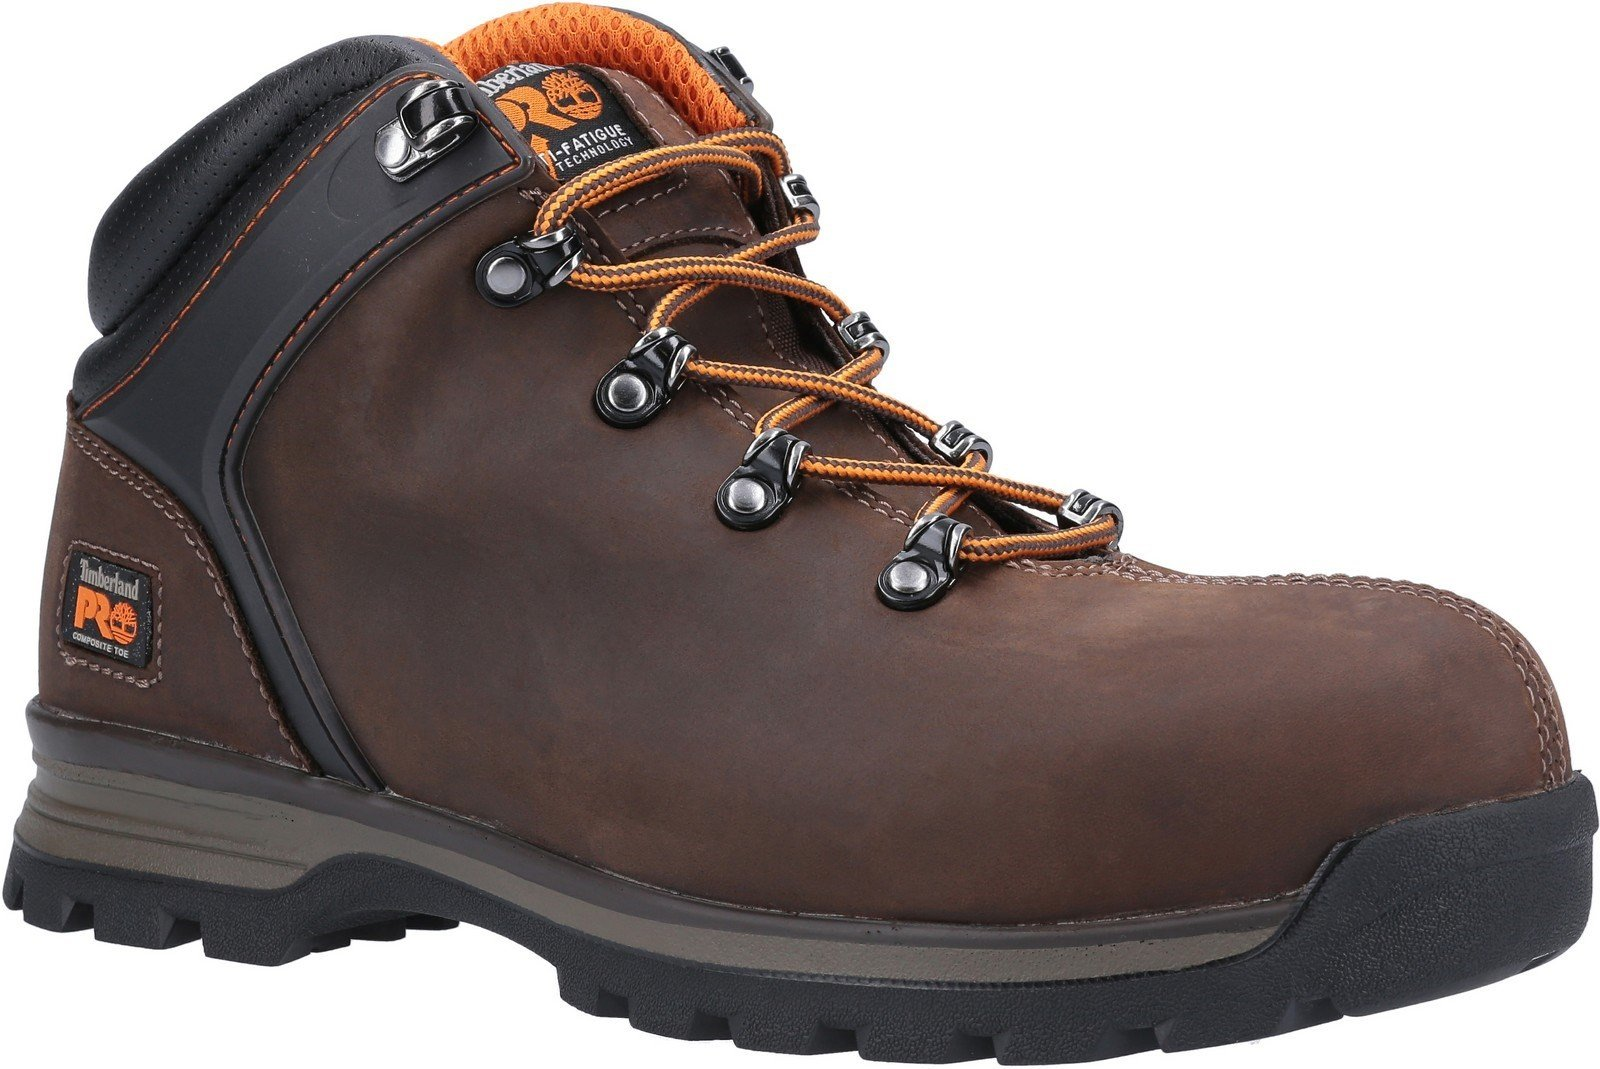 Timberland Pro Men's Splitrock XT Safety Toe Work Boot Various Colours 30950 - Brown 6